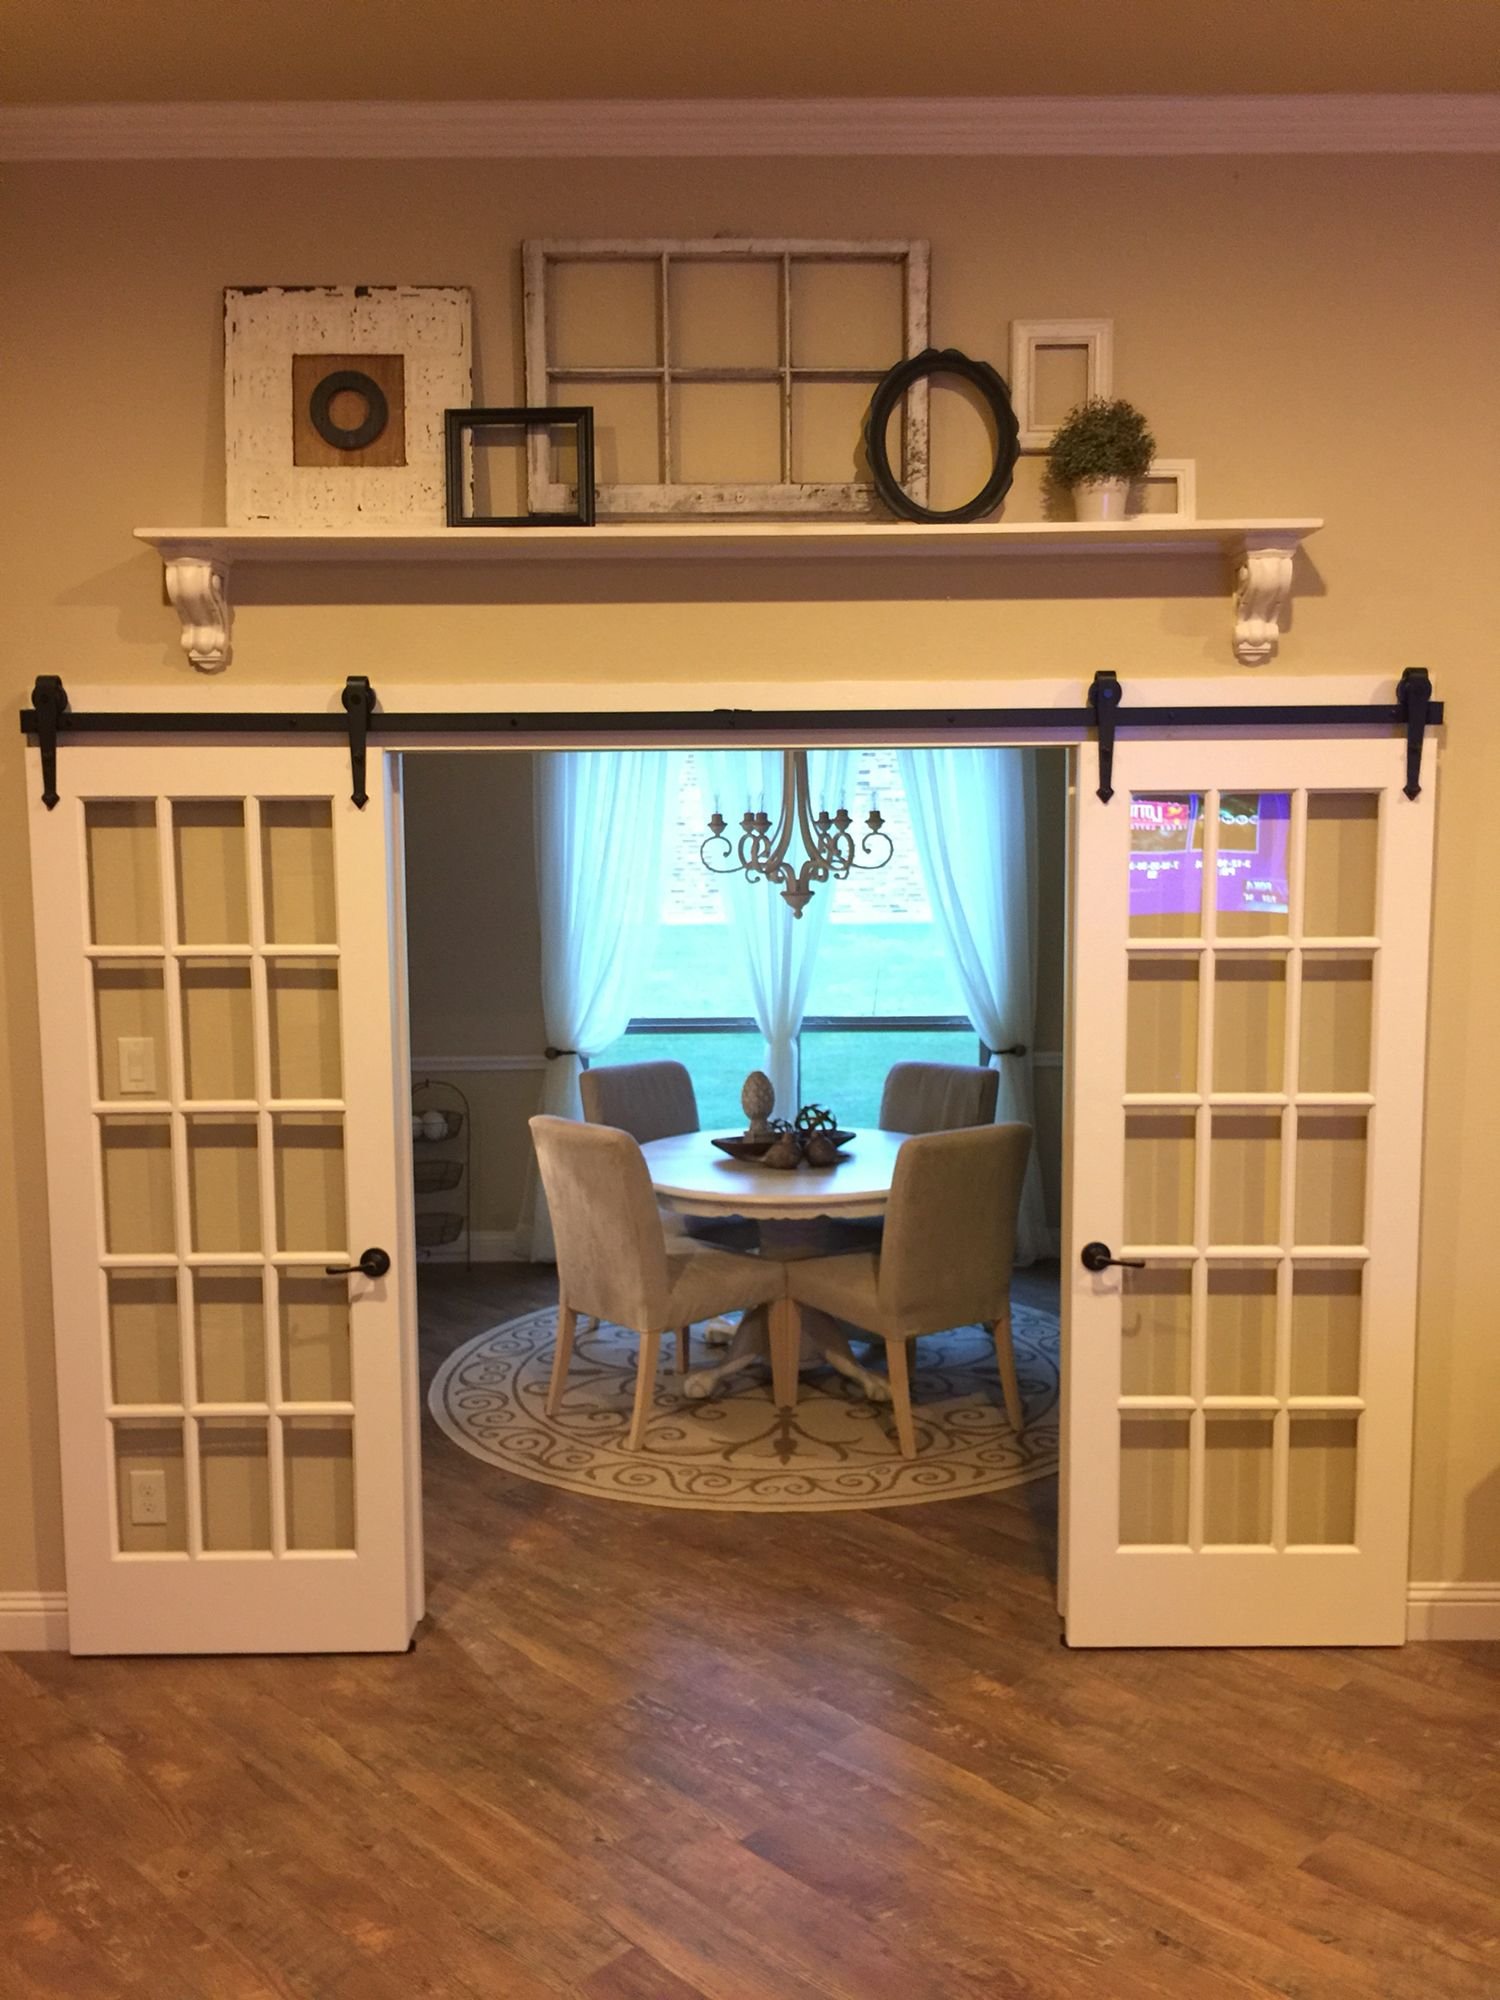 French Doors On A Barn Door Rail And Add A Shelf Above French Doors Interior Trendy Dining Room Room Remodeling